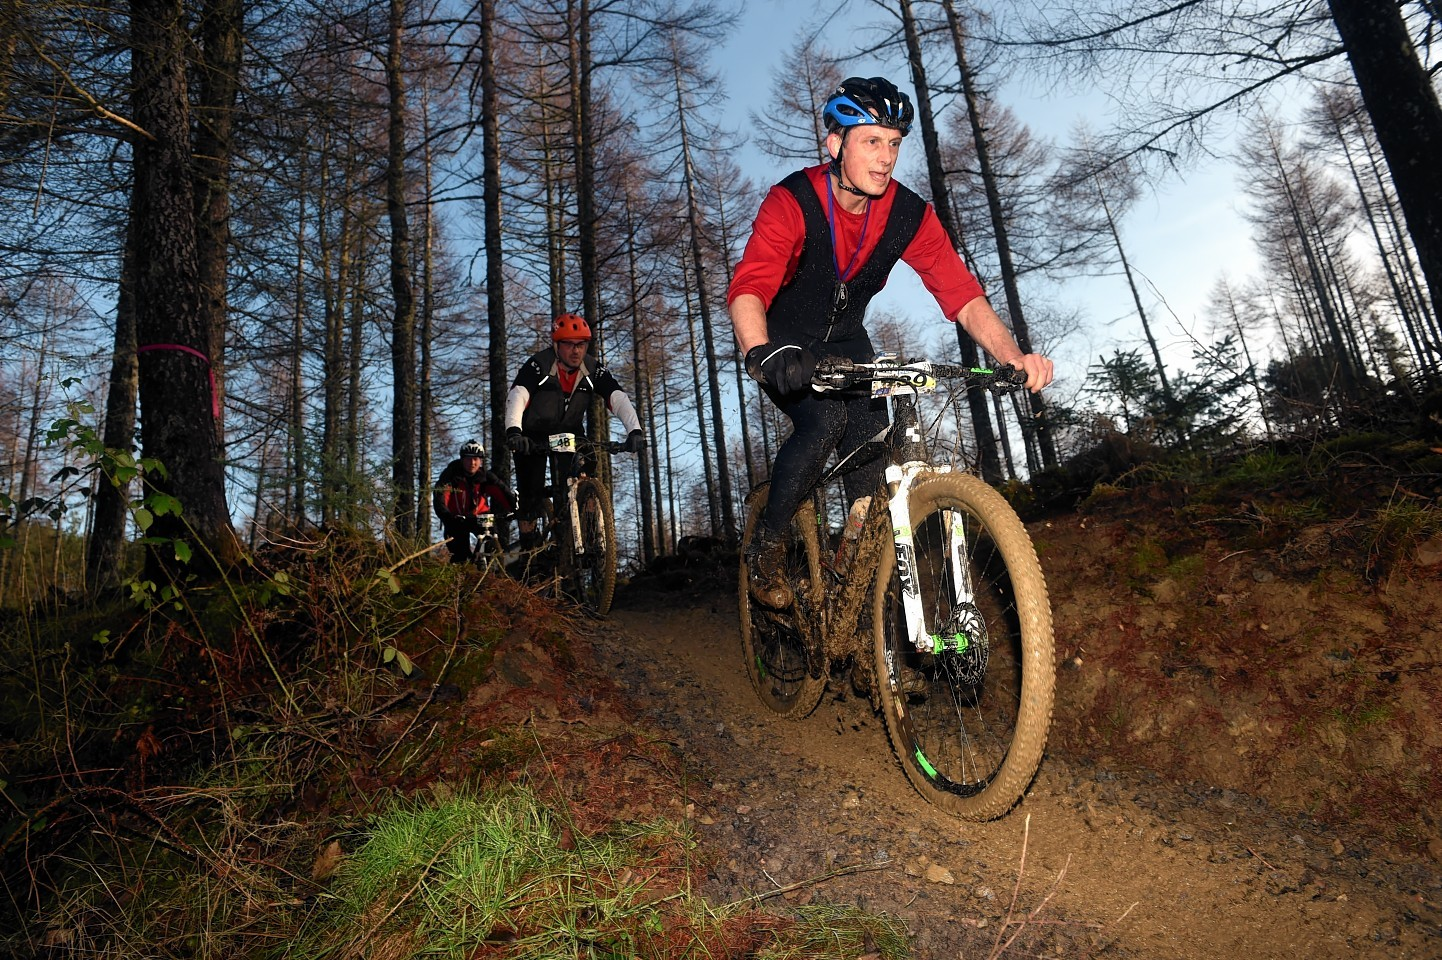 The new bike park is aimed at both mountain bikers and BMX riders